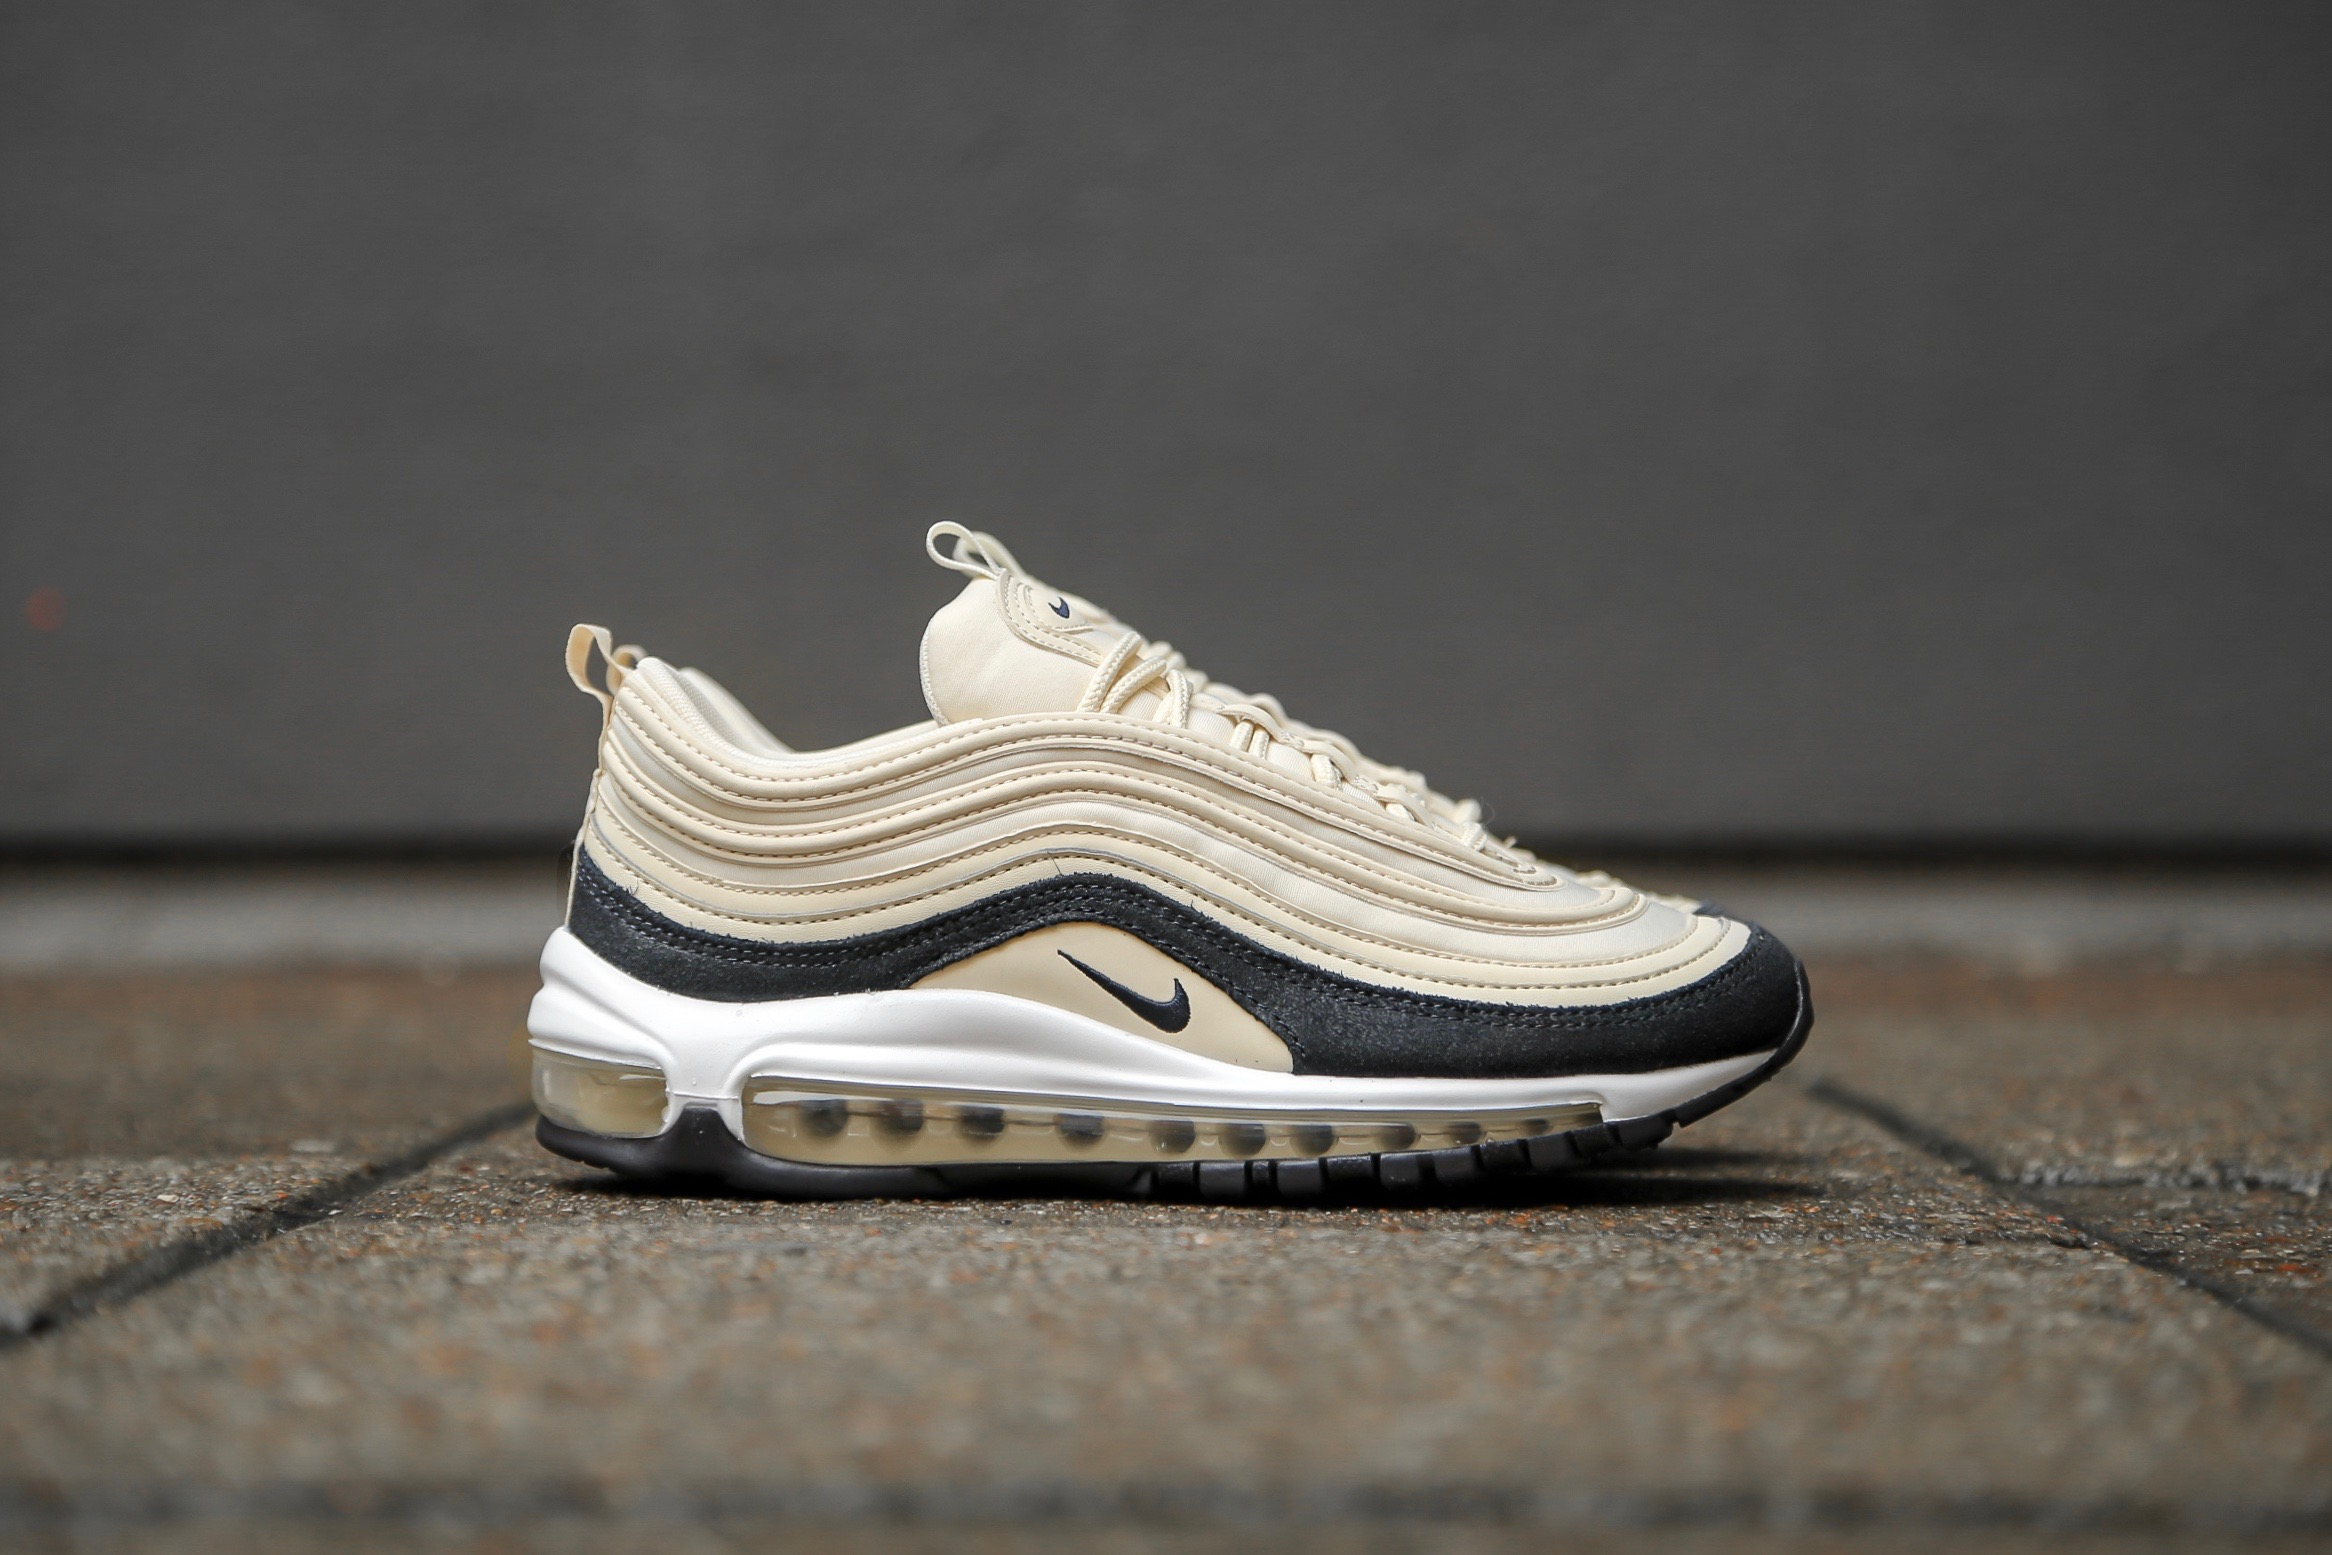 best website b31a0 aab9a Nike W Air Max 97 PRM - Light Cream / Oil Grey